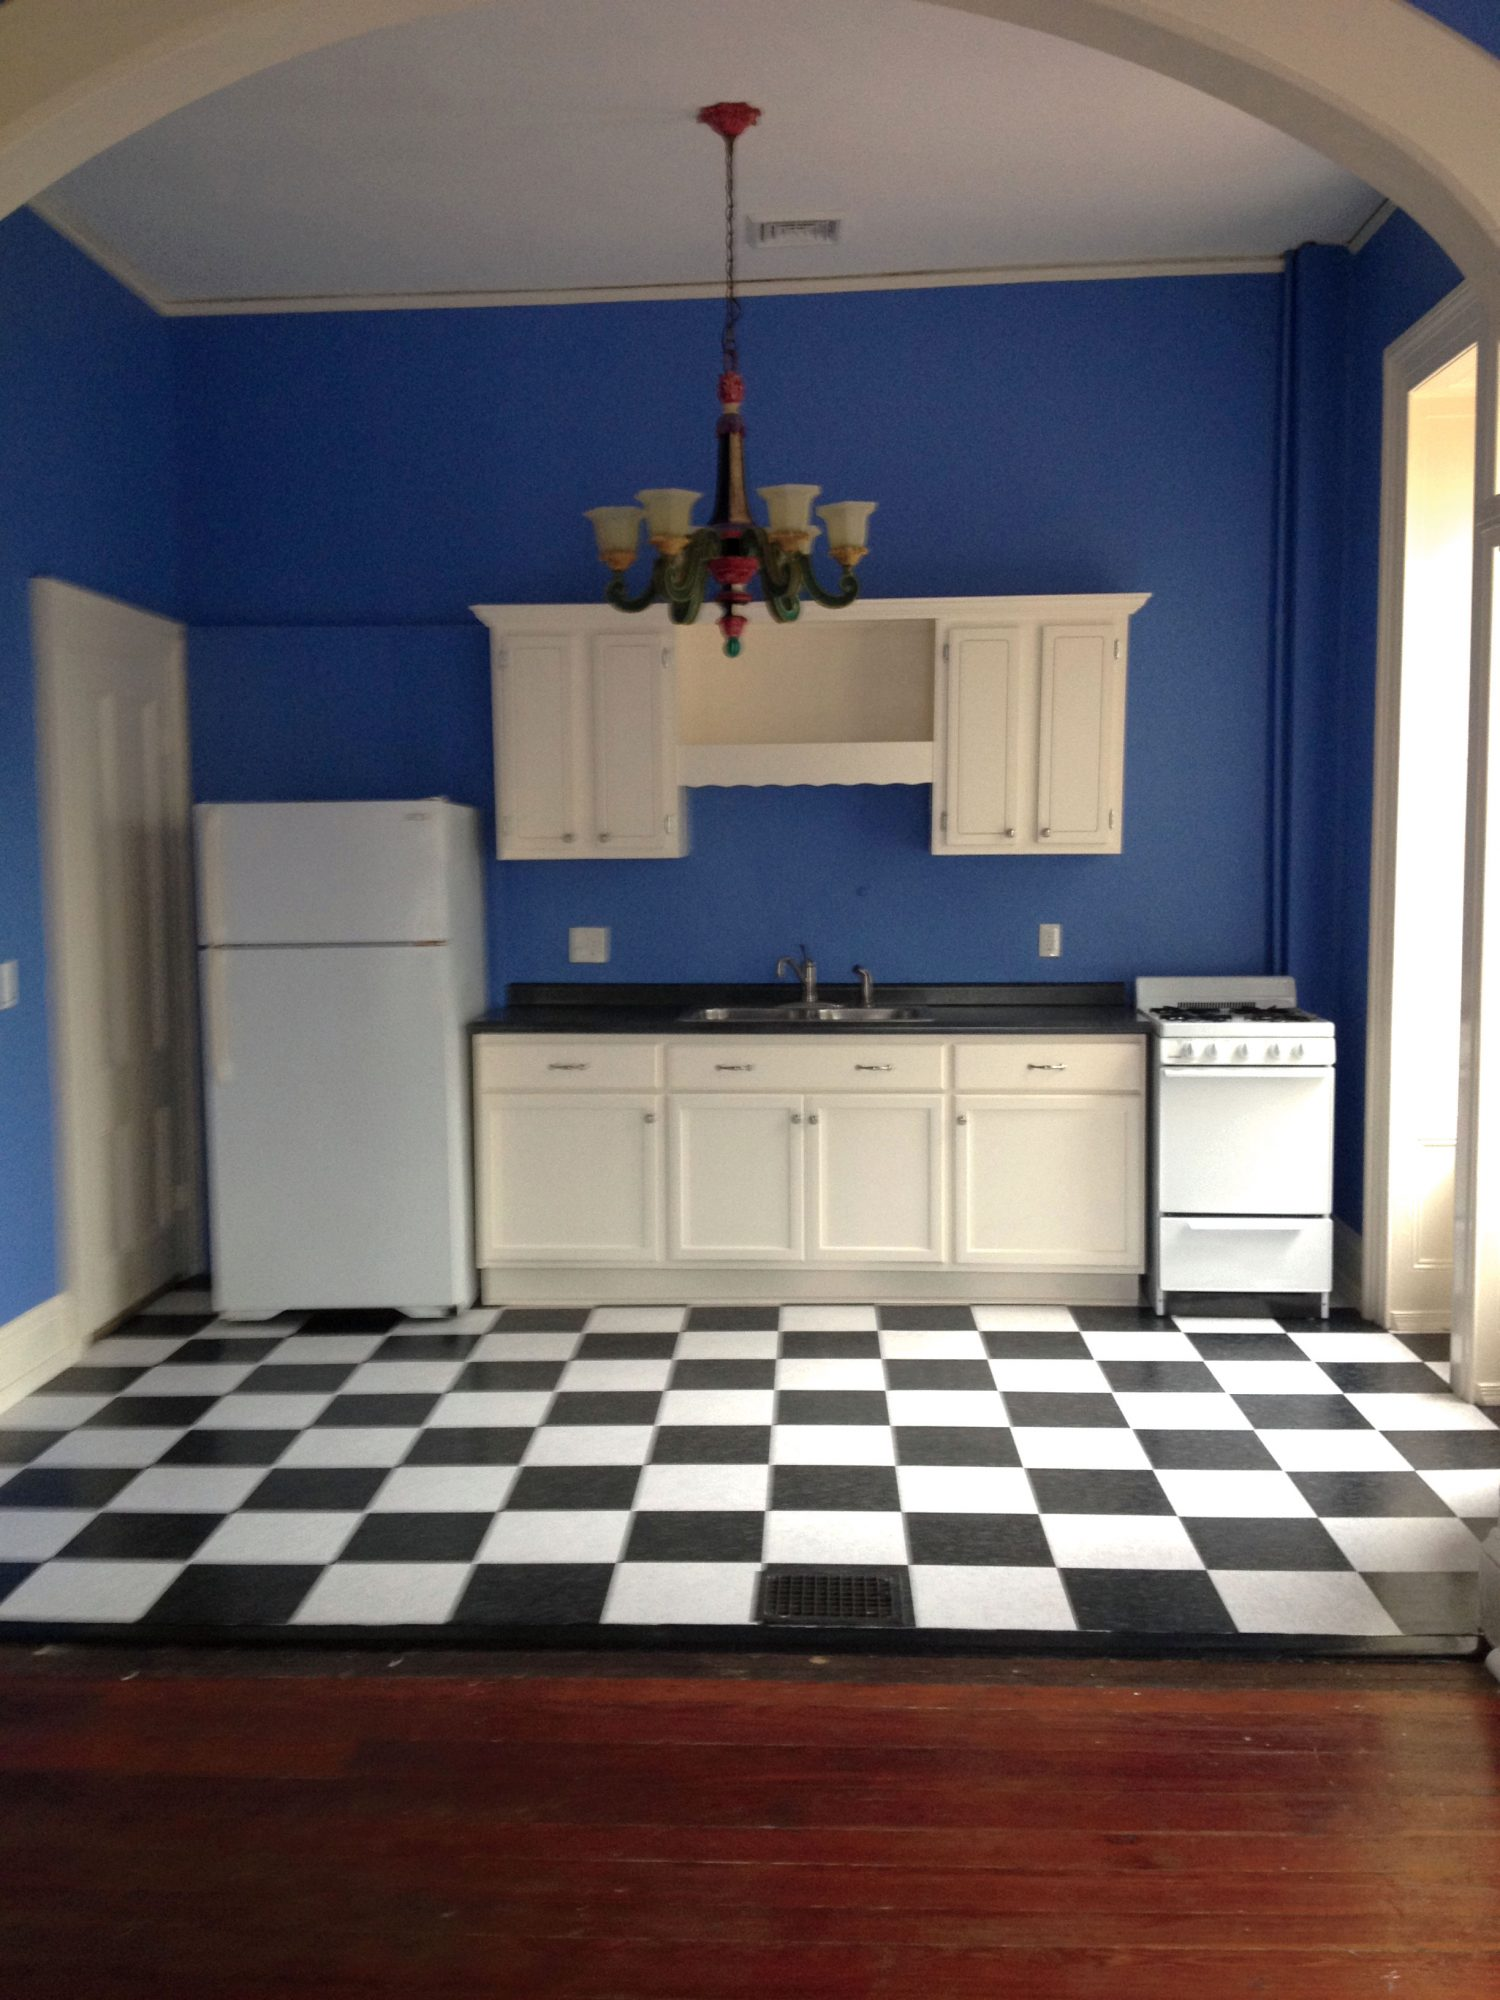 Studio apartment kitchen before with blue walls and black and white tile floor